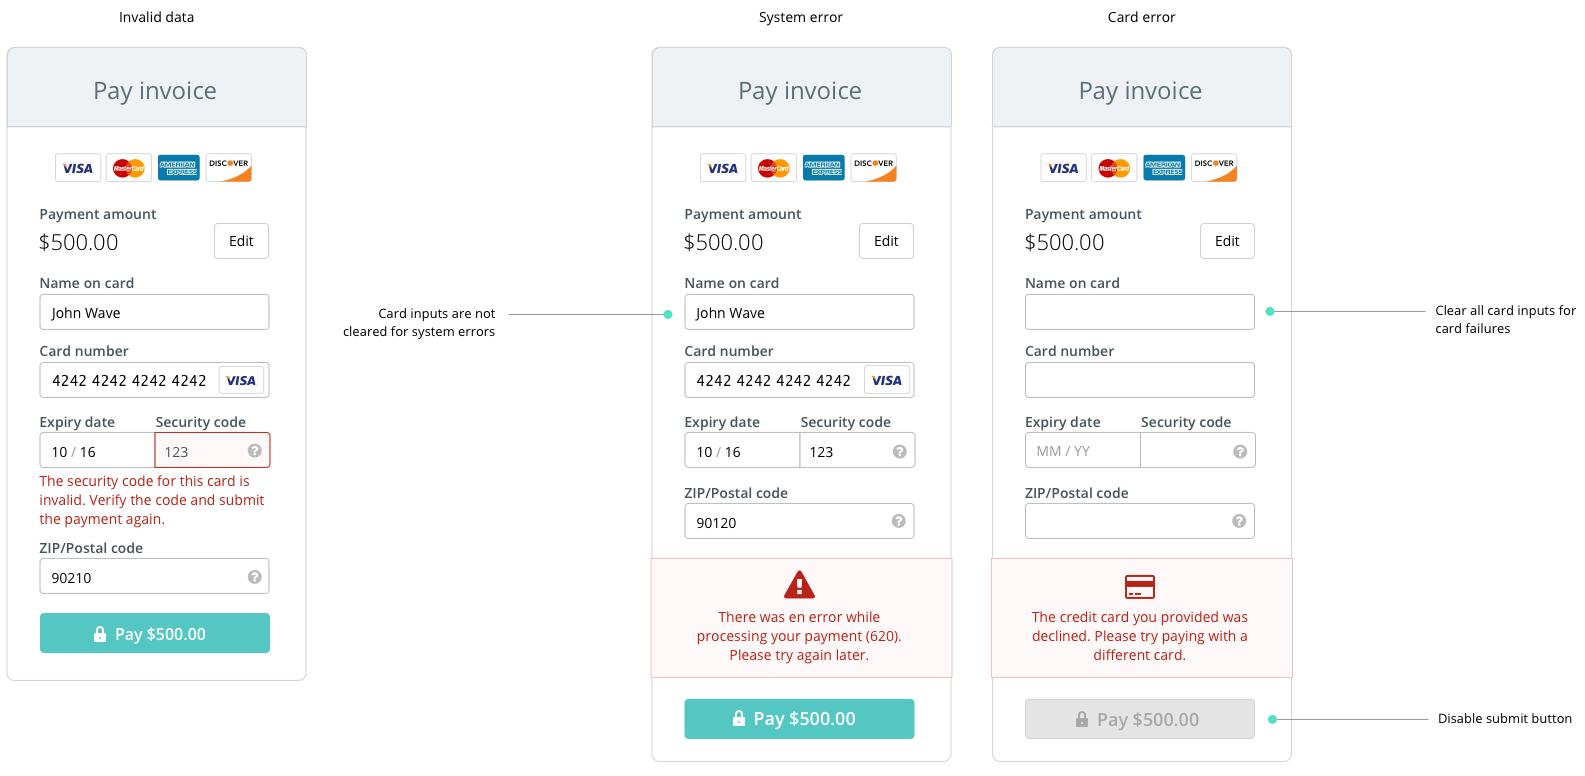 ... a user can retry the payment. When a card is declined (i.e. card  error), this is usually a smell for fraud, so we clear the data entered by  the user.